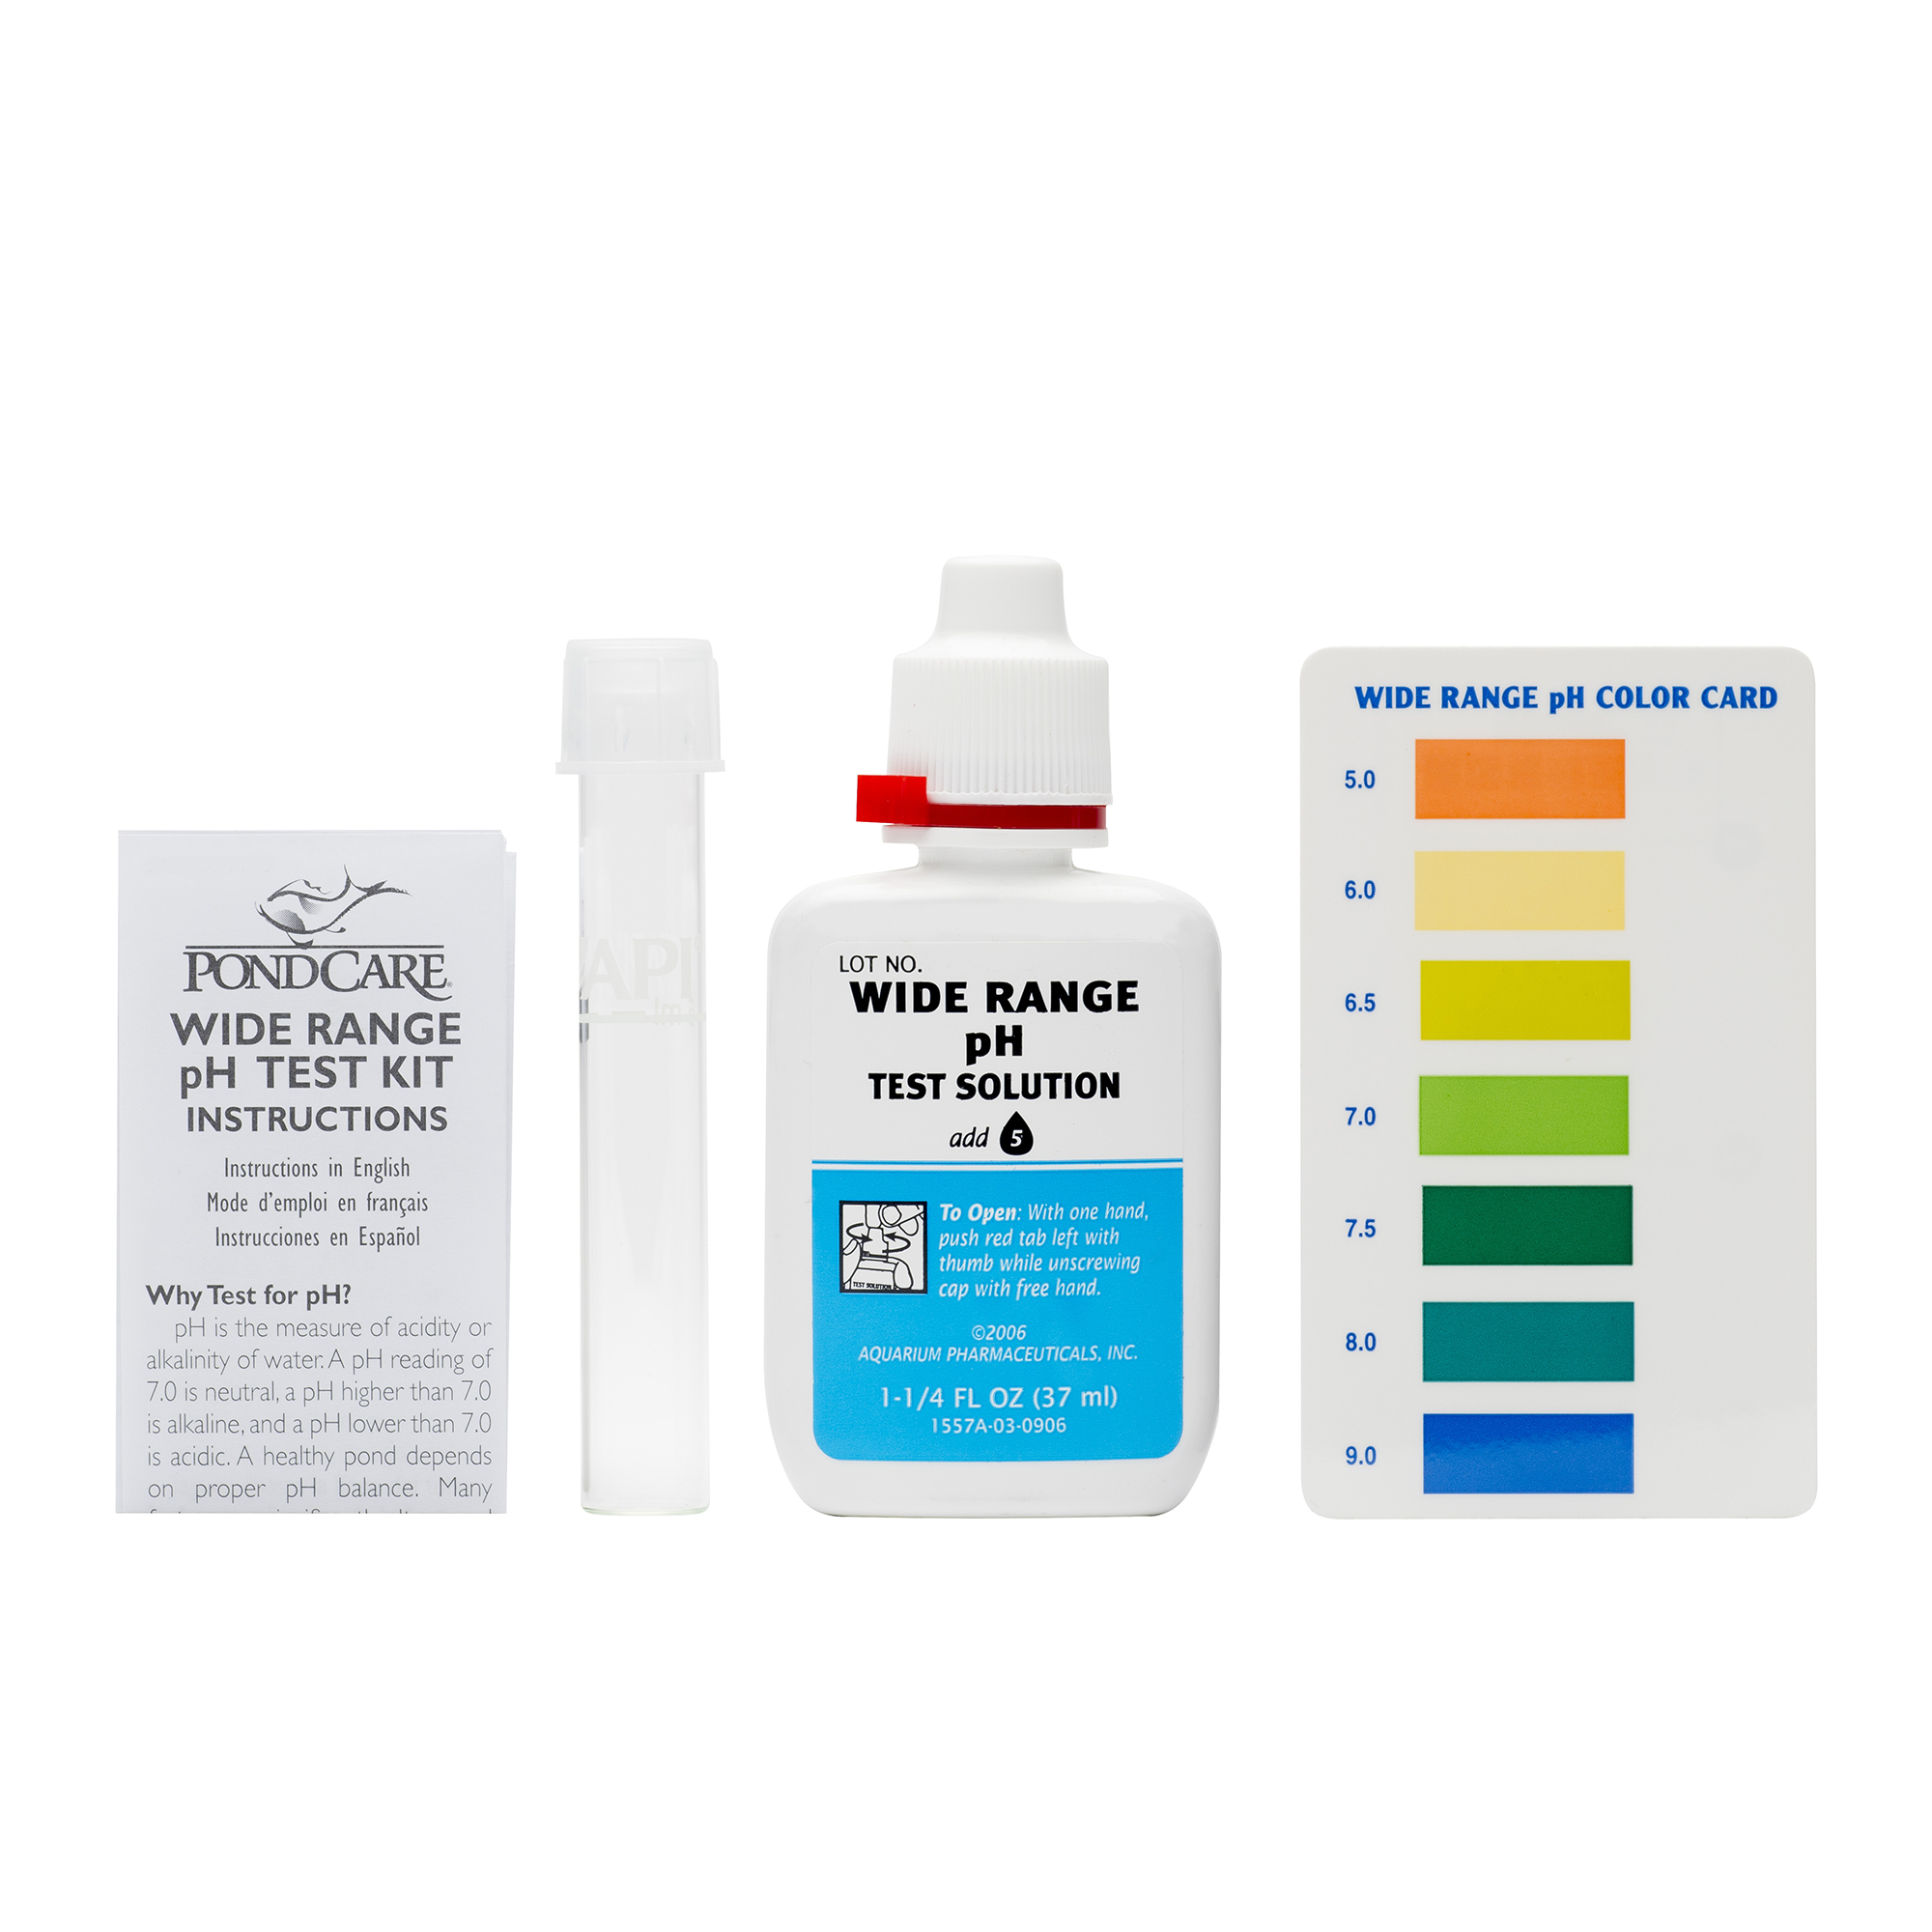 POND WIDE RANGE pH TEST KIT